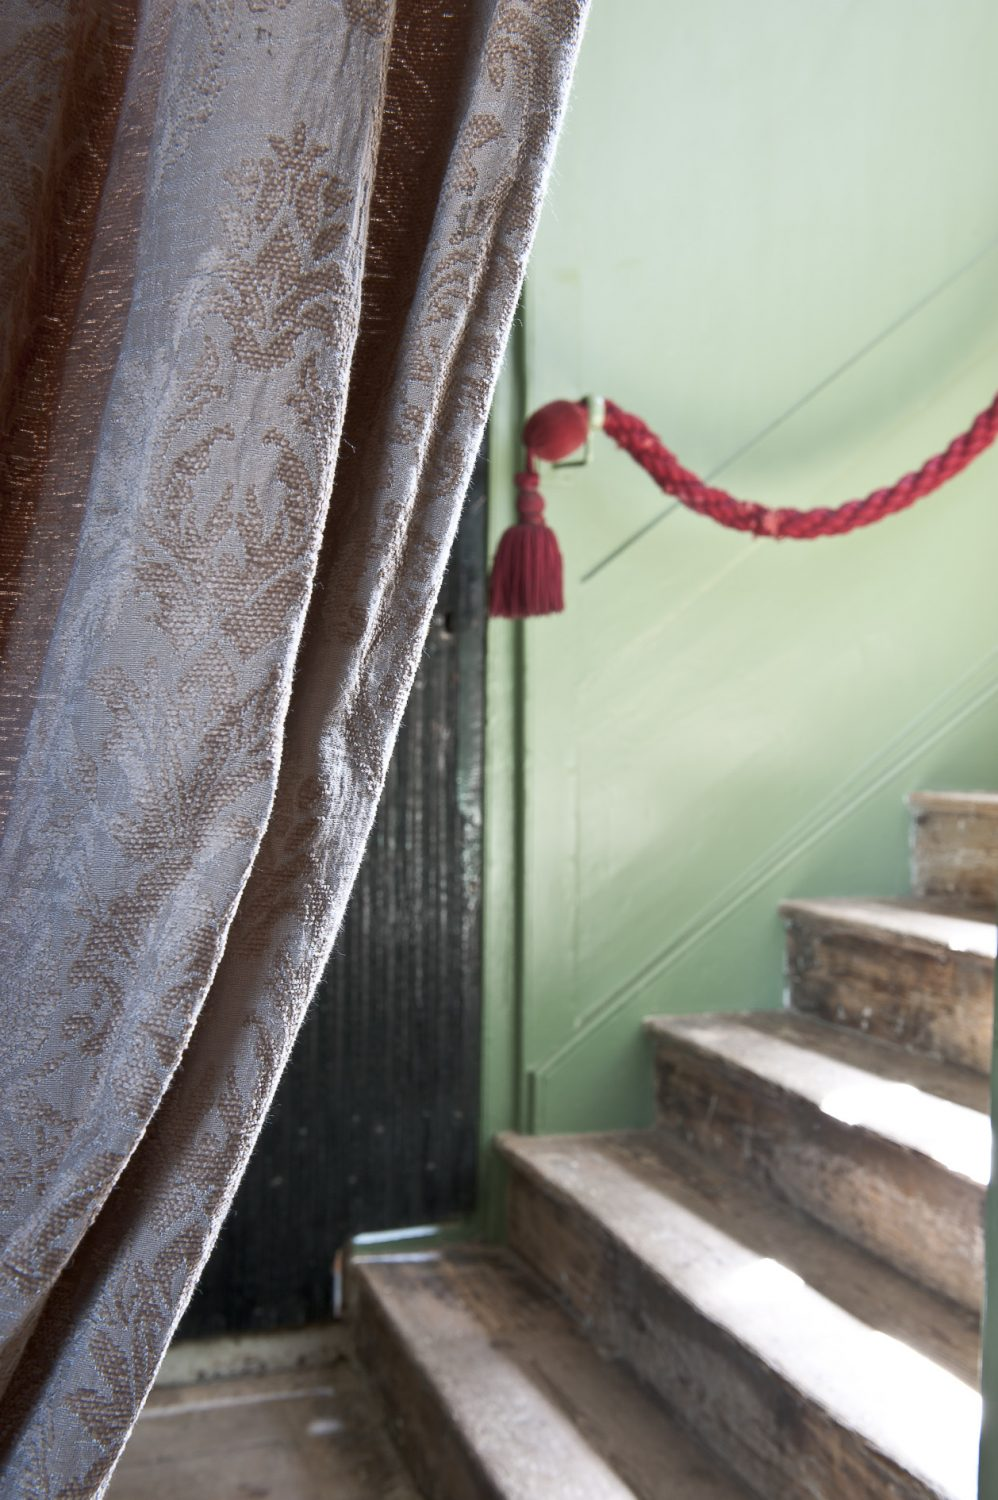 I follow Olga up a Farrow & Ball 'Chappell Green' painted staircase to the oak panelled Gallery